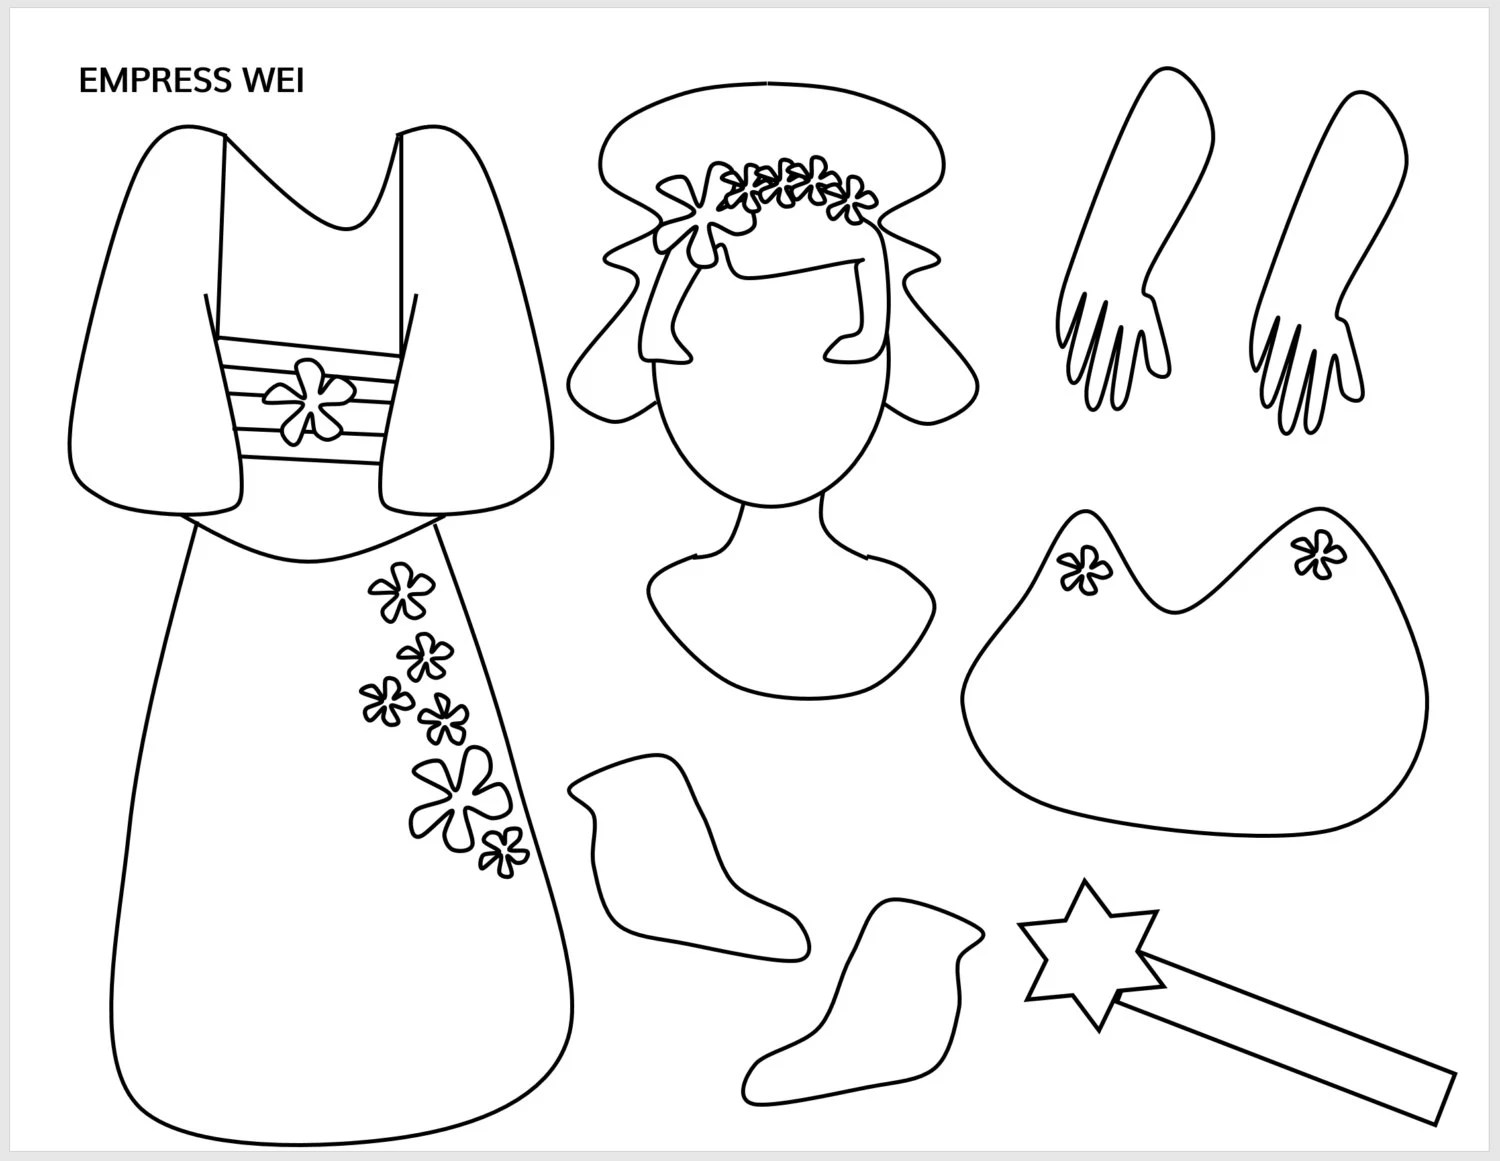 Paper Bag Princess Sketch Coloring Page